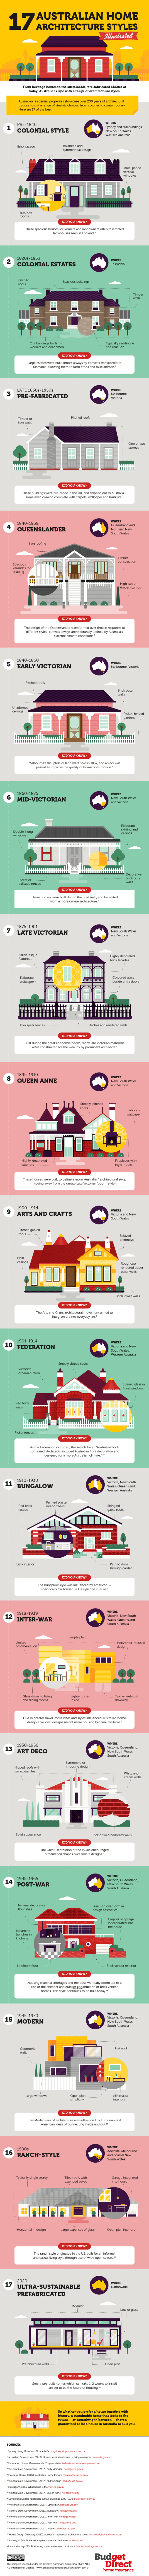 17-Australian-home-architecture-styles-illustrated-535x9274